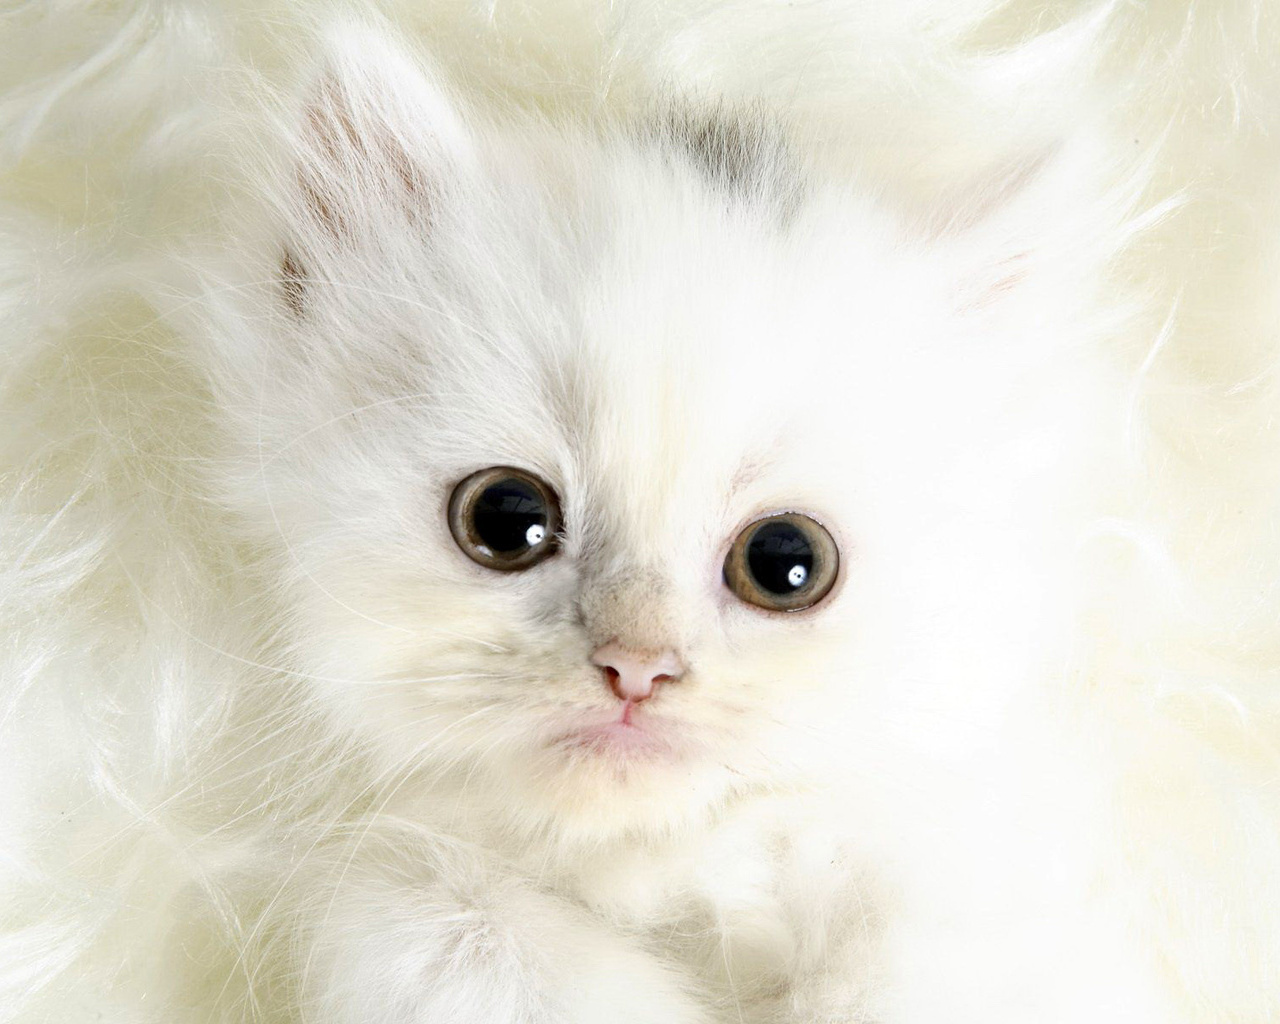 Strictly wallpaper wallpapers for cat lovers 5 - Cute kittens hd images ...